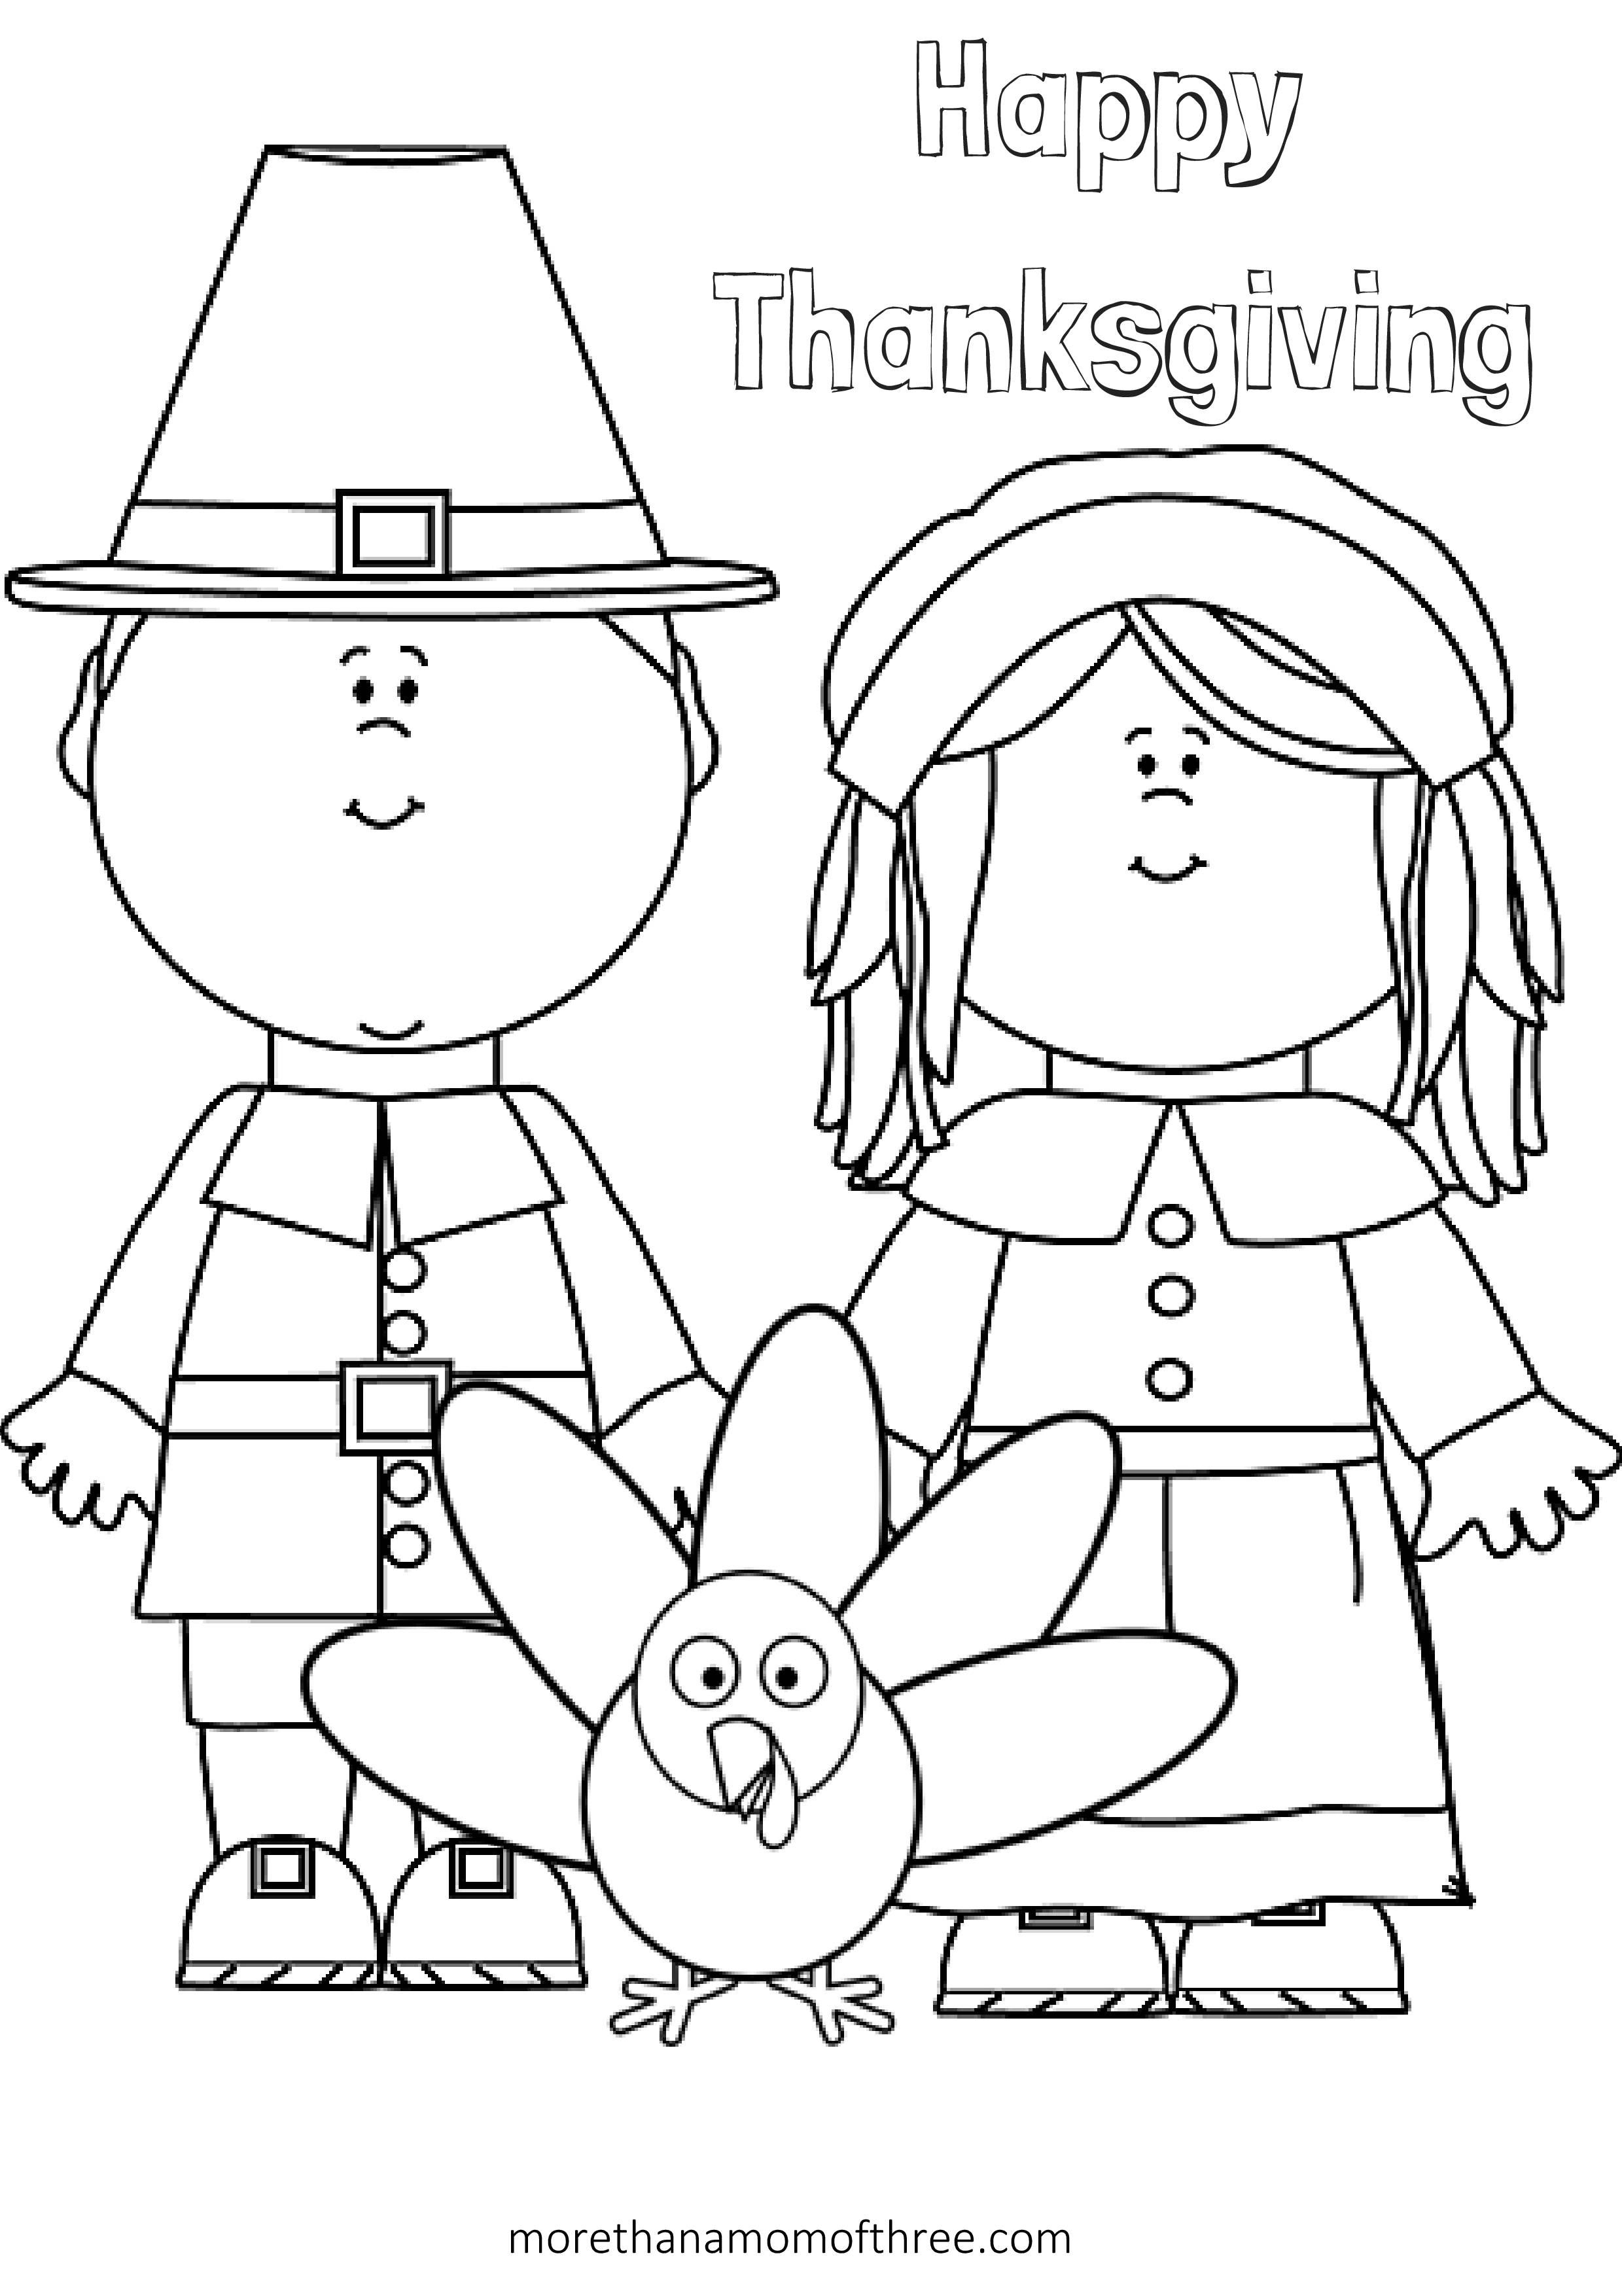 Free Thanksgiving Coloring Pages Printables For Kids   Thanksgiving - Free Printable Thanksgiving Coloring Pages